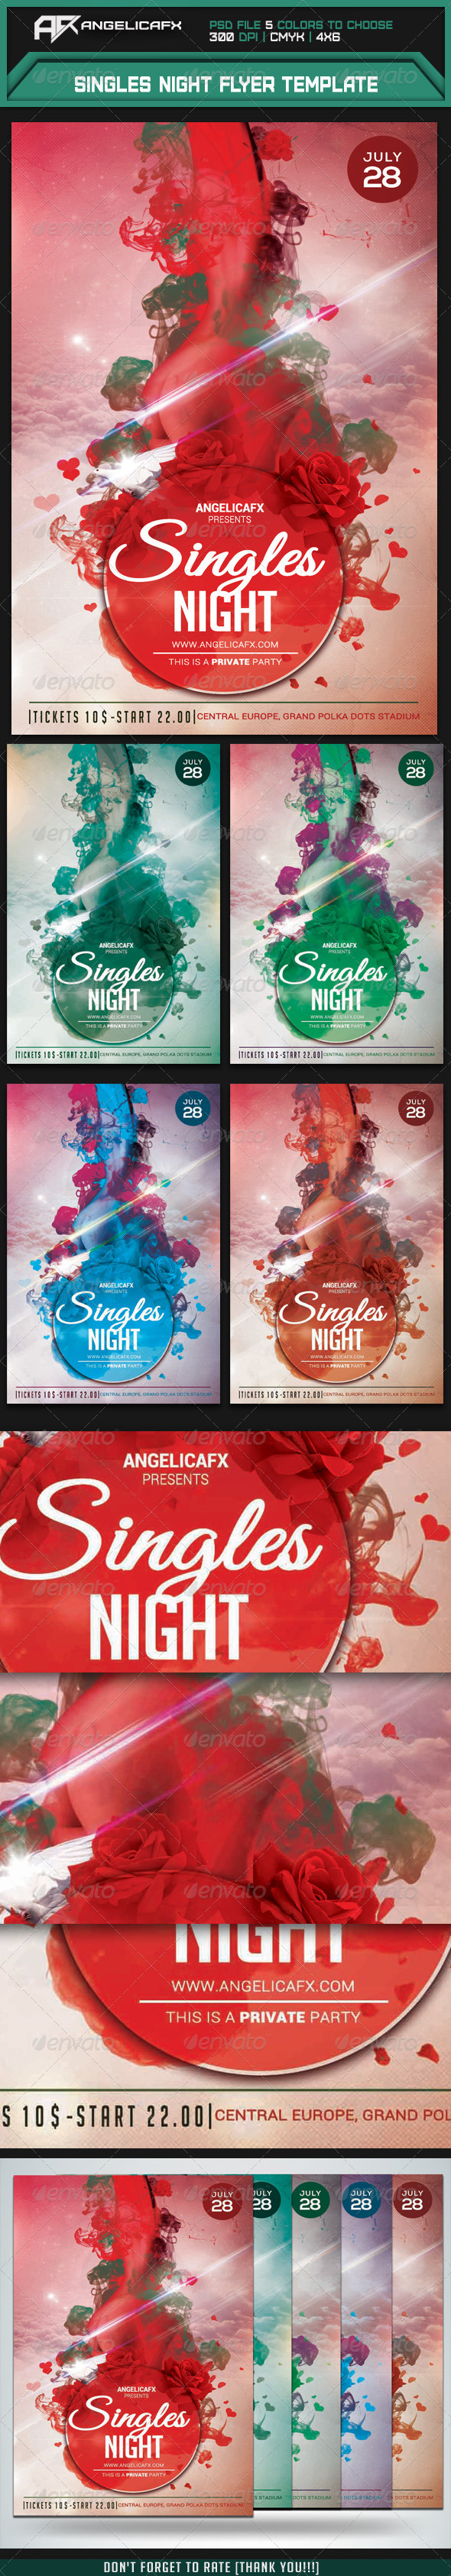 GraphicRiver Singles Night Flyer Template 8012833